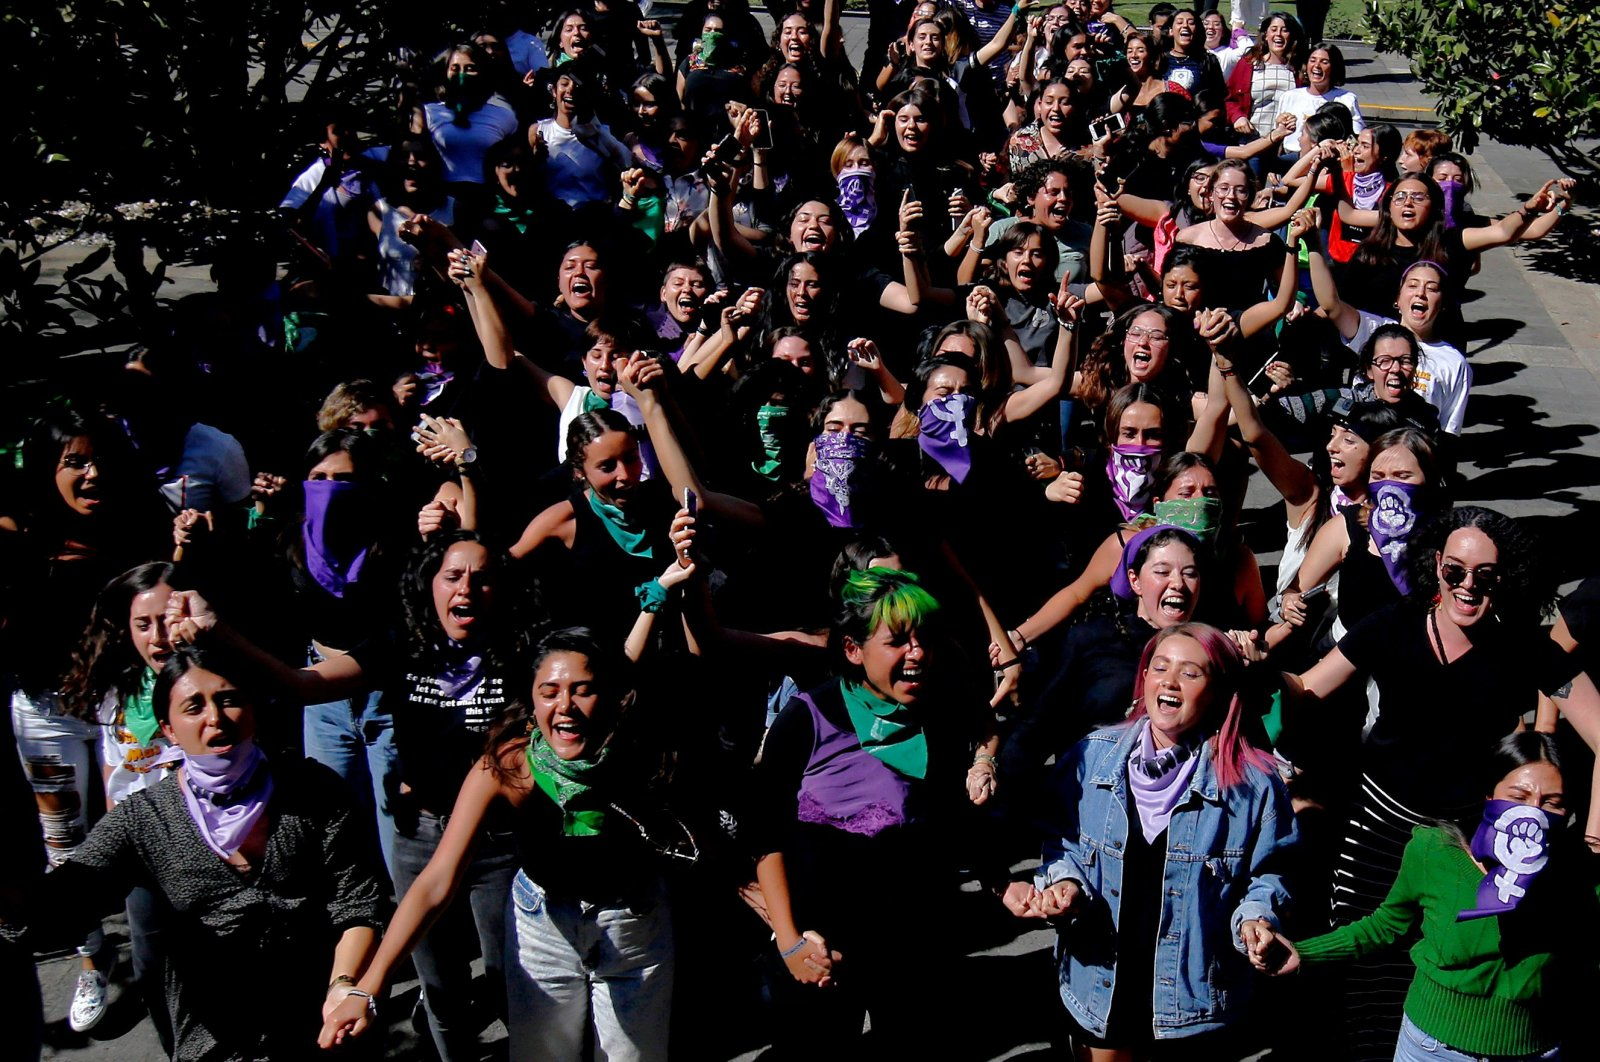 """Students protest against gender violence and patriarchy at the Jesuit University of Guadalajara (ITESO), as part of the start of activities for 8M """"International Women's Day,"""" Guadalajara, March 5, 2020. (AFP Photo)"""